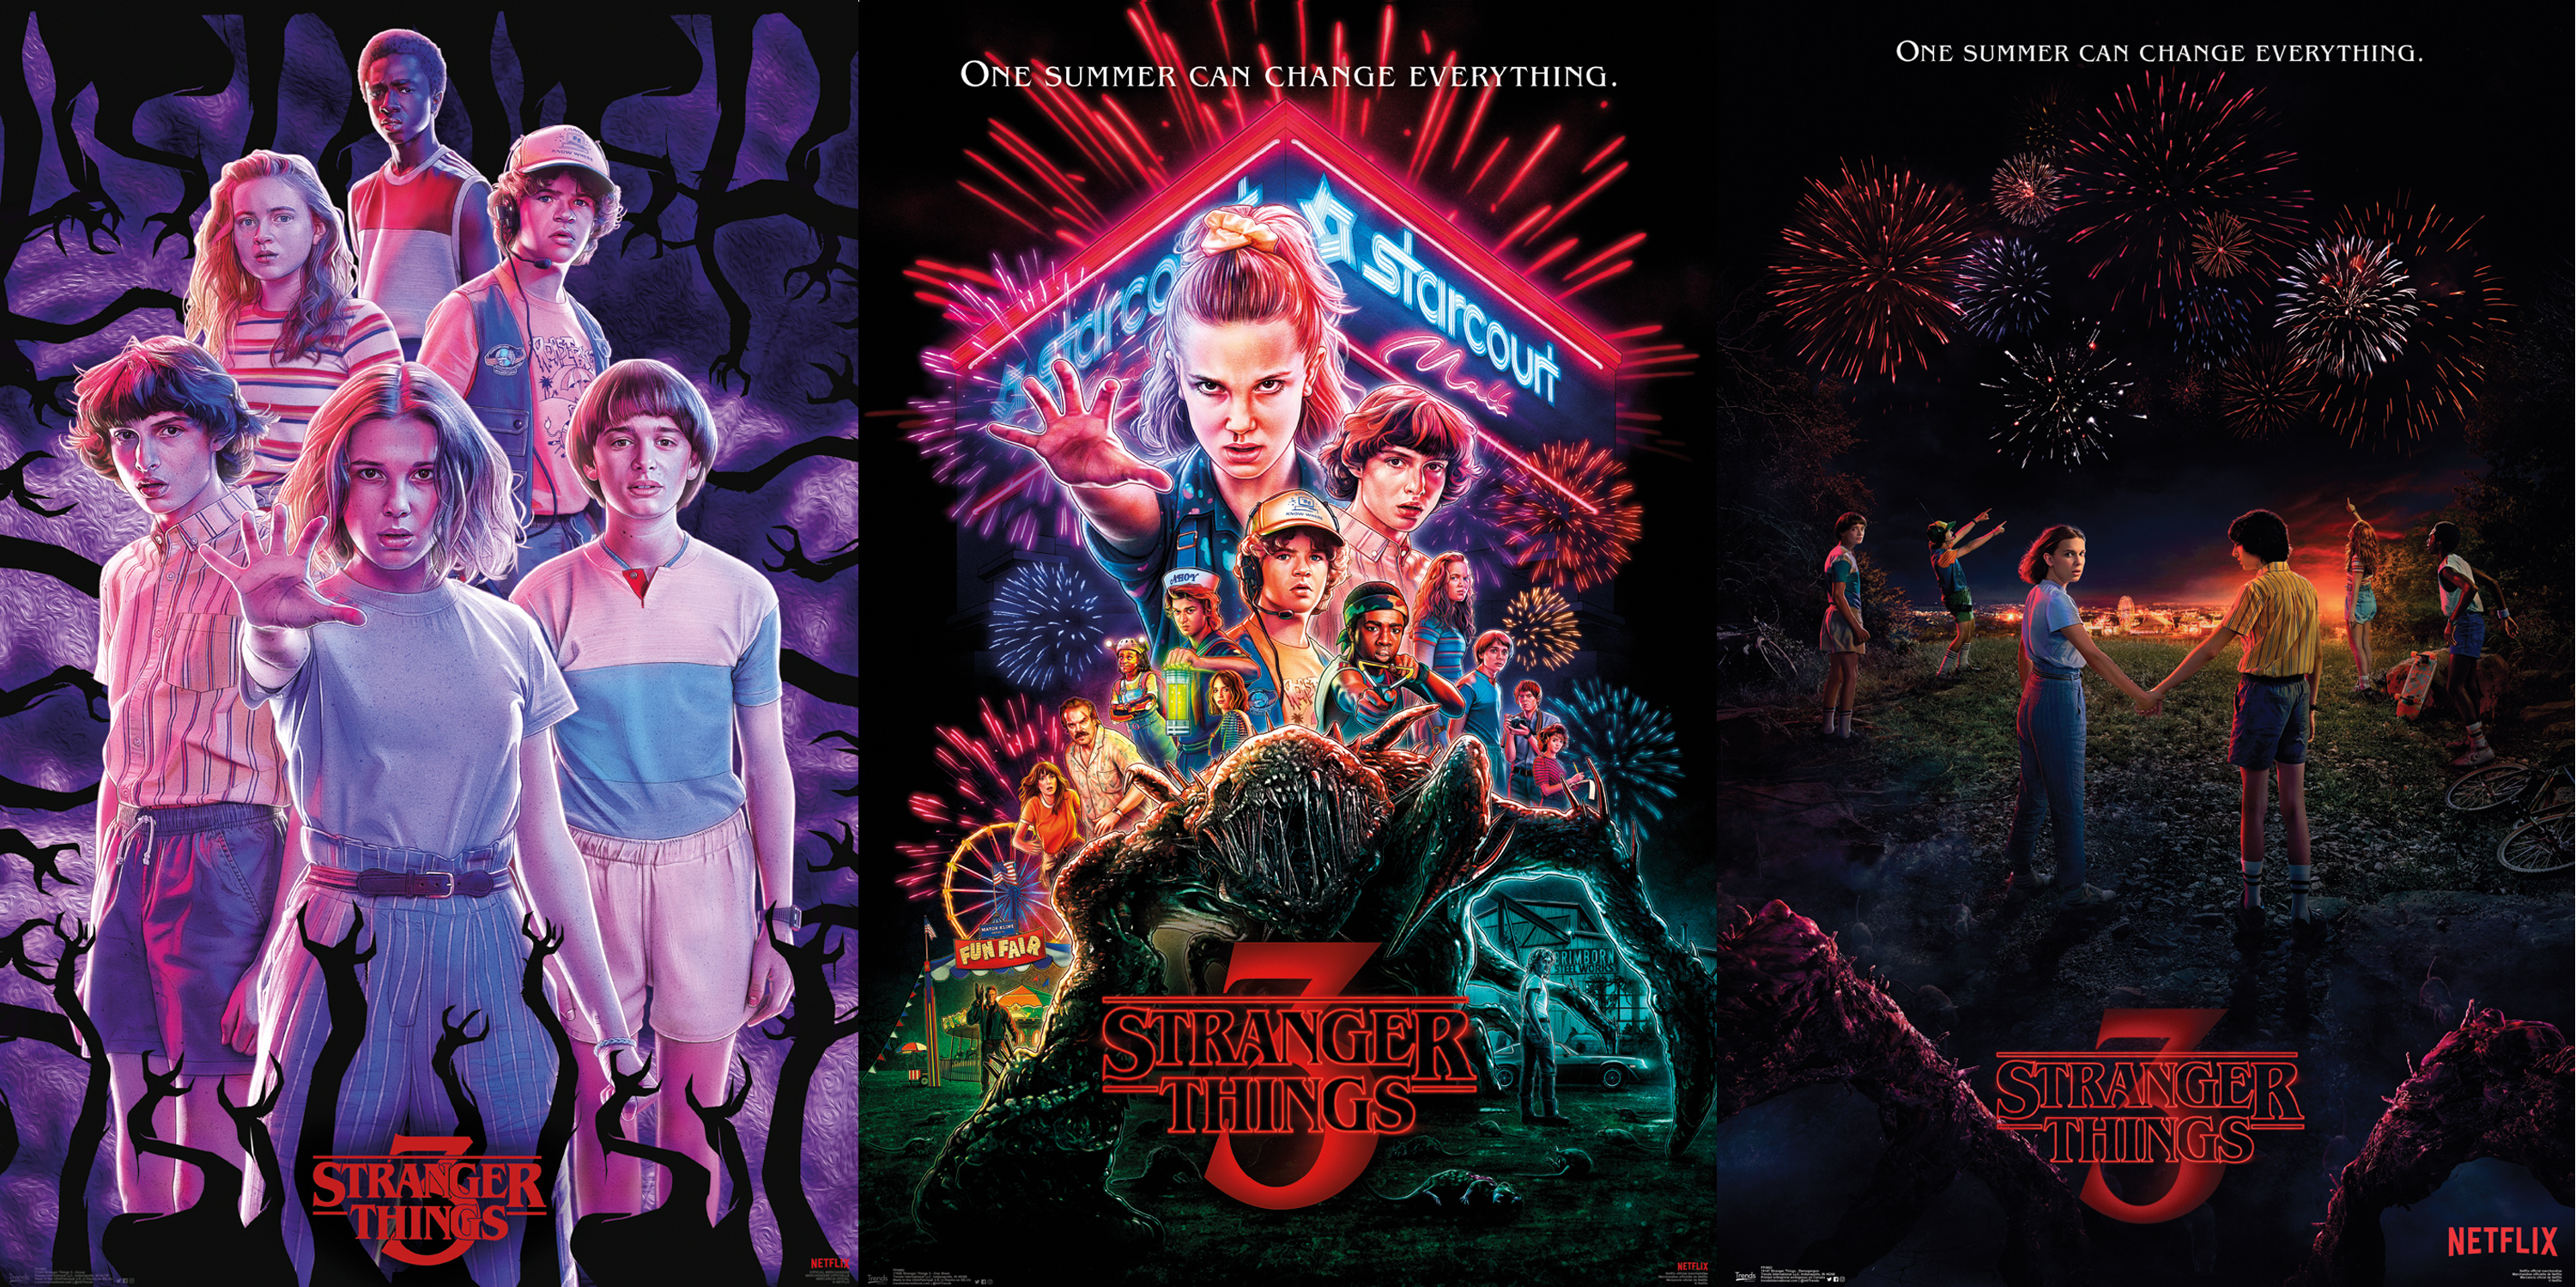 Stranger Things Season 3 Bundle Maxi Poster 7,900,803 likes · 1,552 talking about this. stranger things season 3 bundle maxi poster